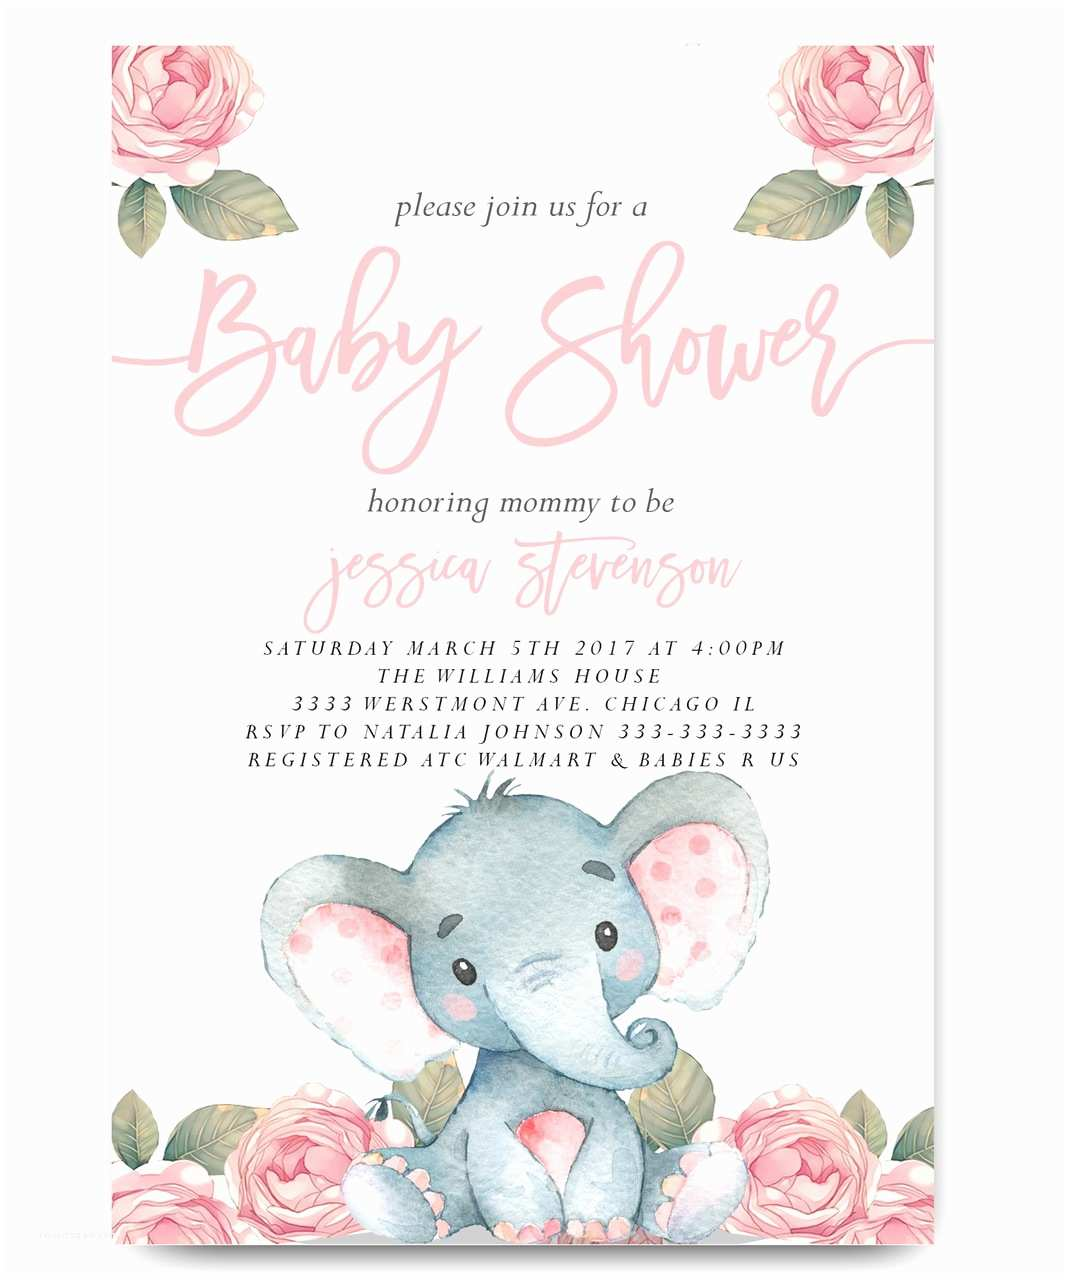 Baby Shower Elephant Invitations Elephant Baby Shower Invitation Pink Floral Elephant